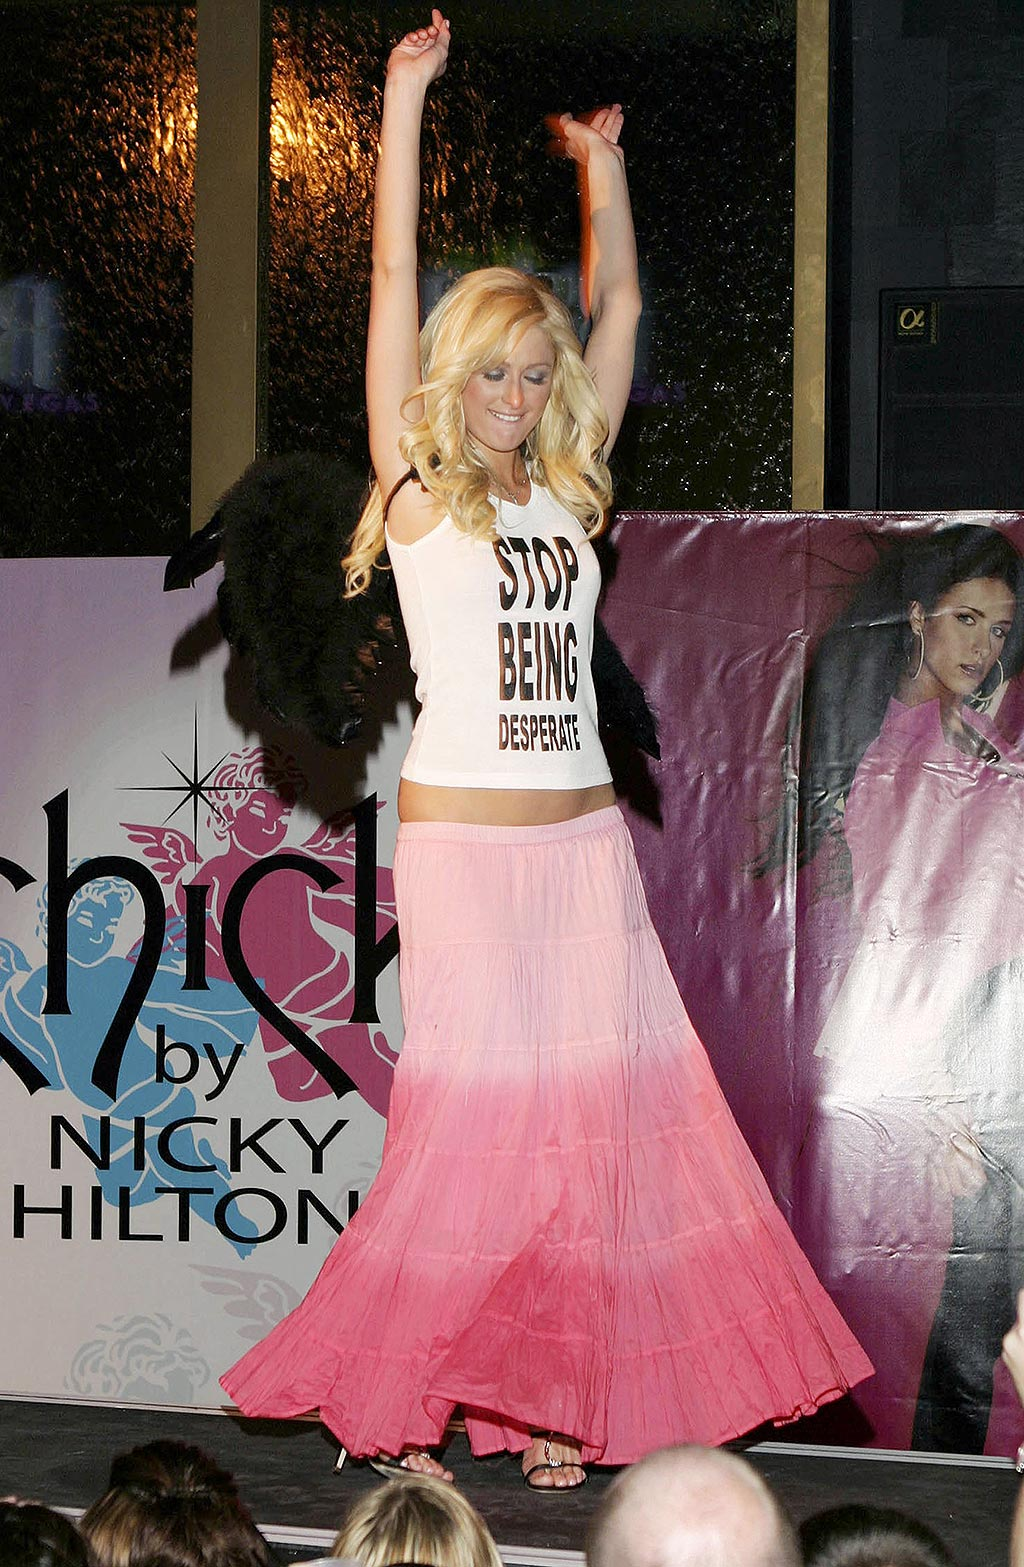 Paris Hilton wearing Chick by Nicky Hilton during Nicky Hilton Launches her New Clothing Line Chick by Nicky Hilton in Las Vegas, Nevada, United States.